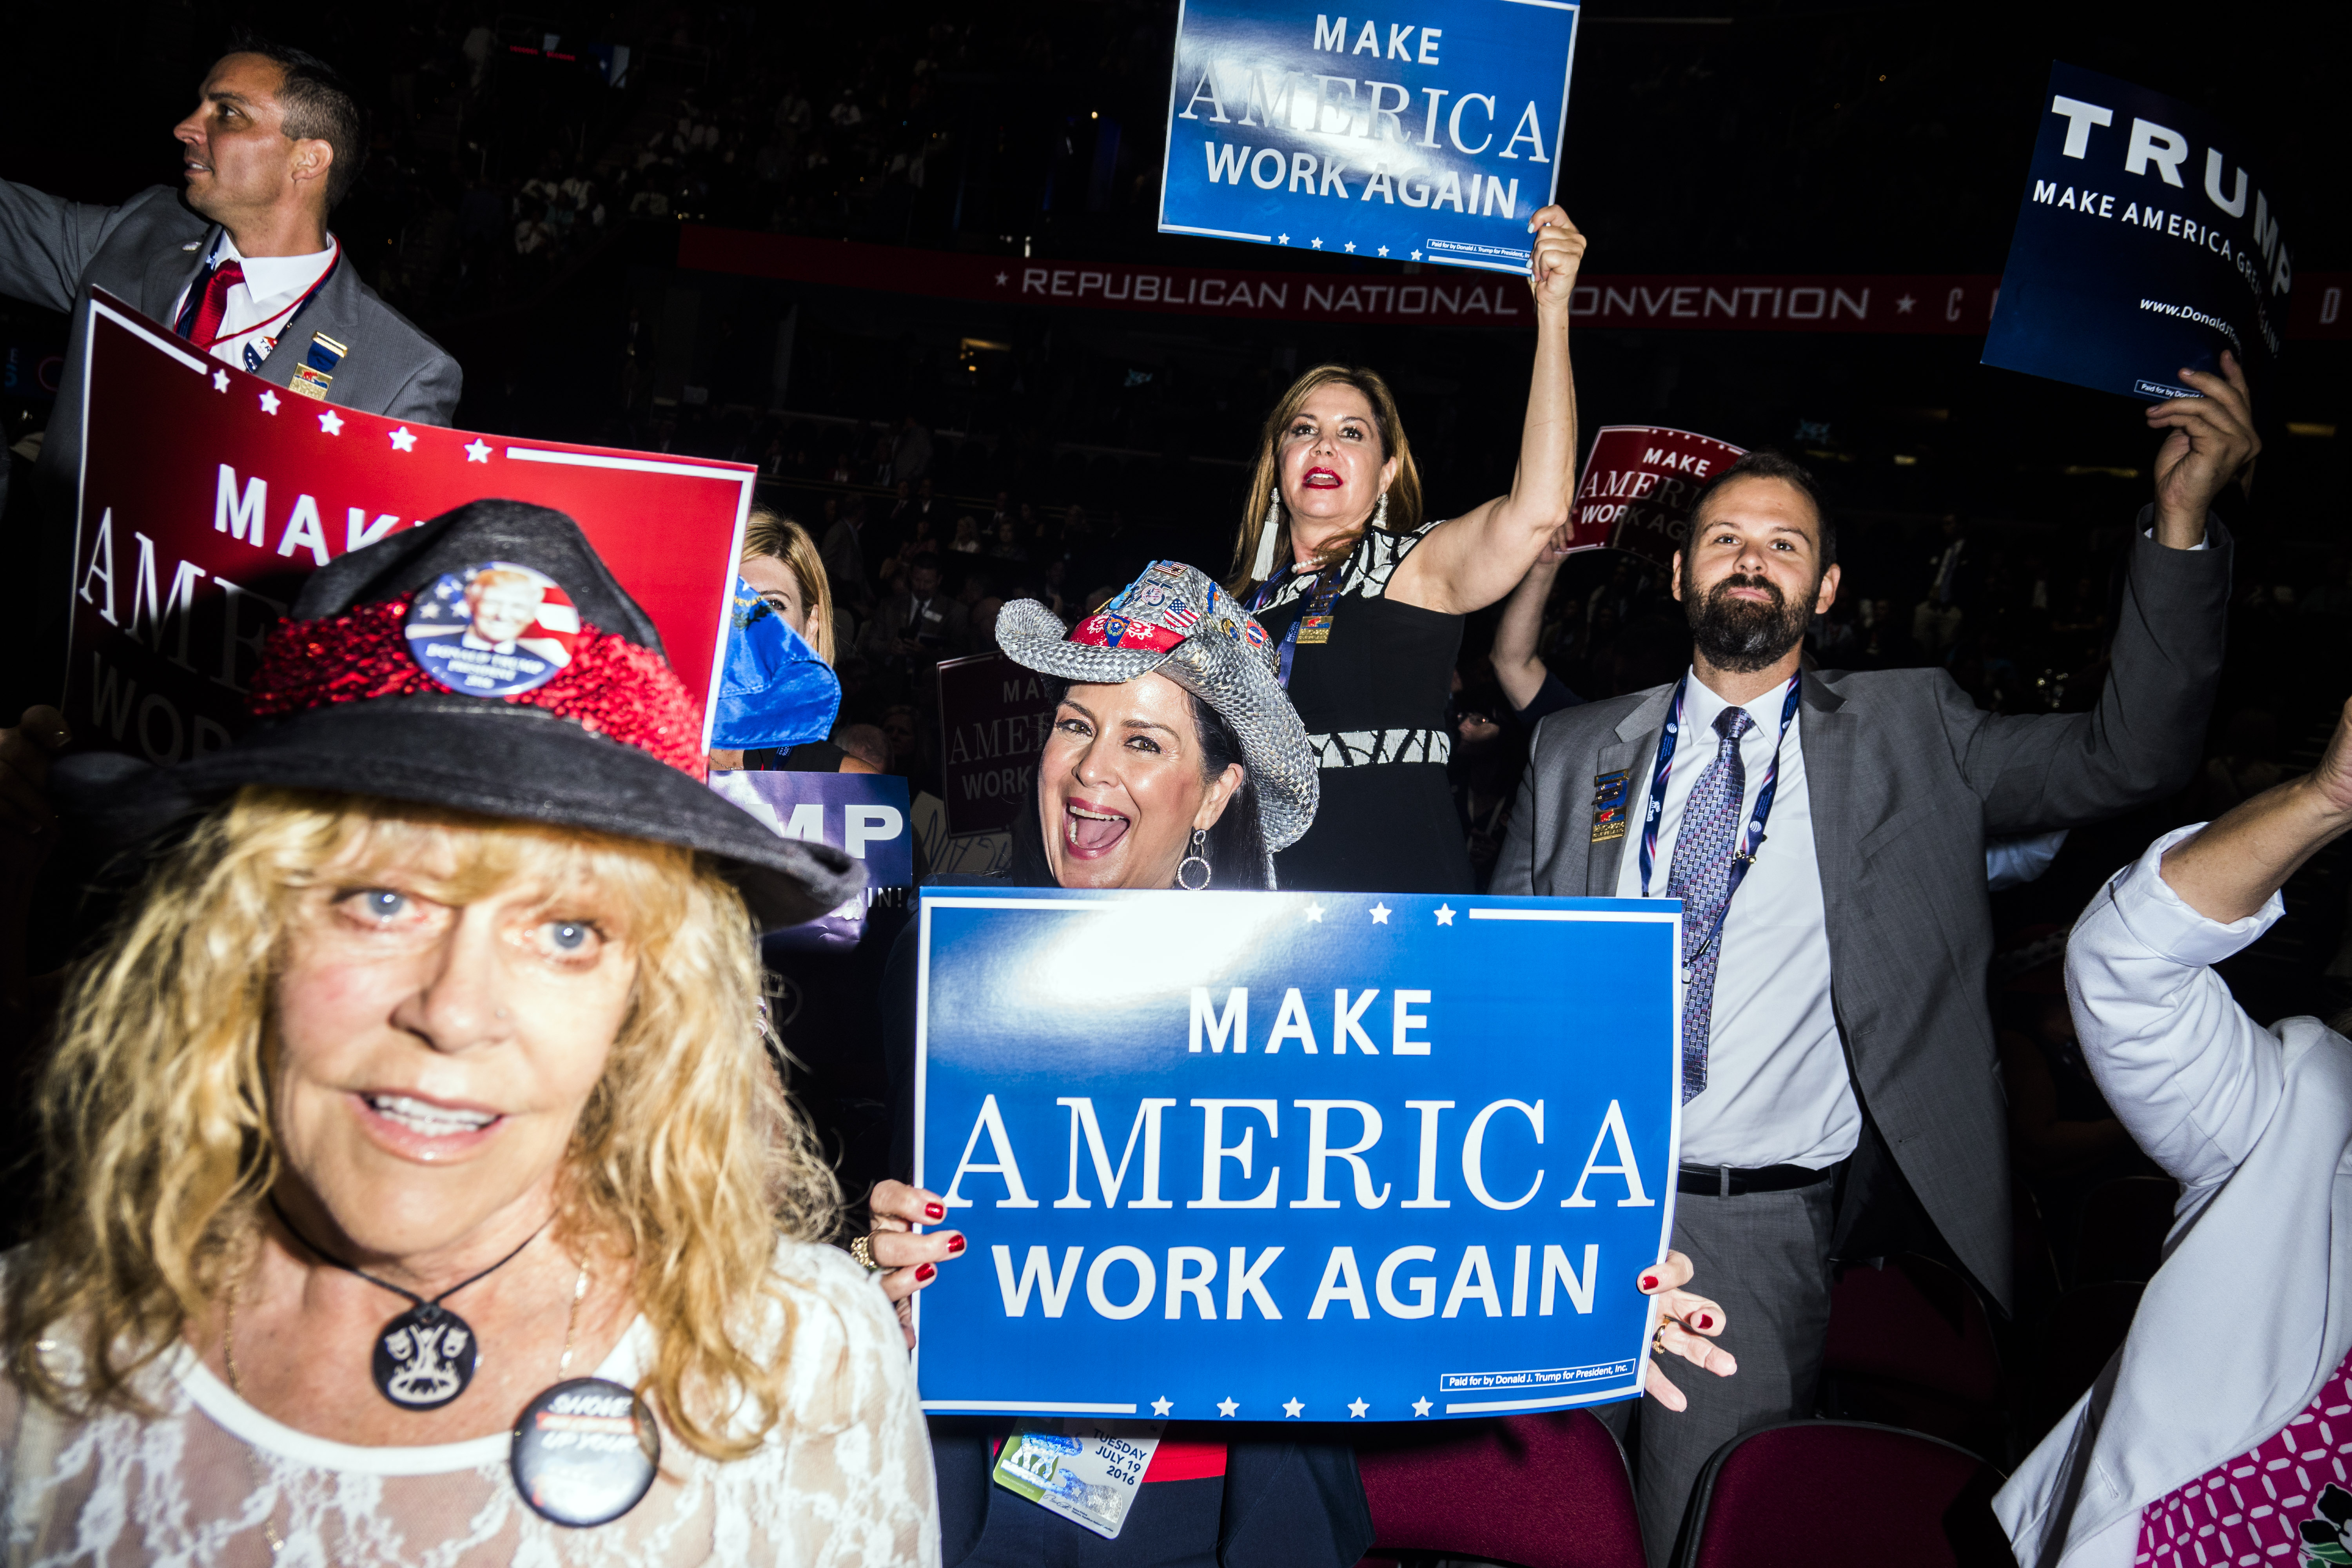 Attendees hold signs at the Republican National Convention in Cleveland on July 19, 2016.